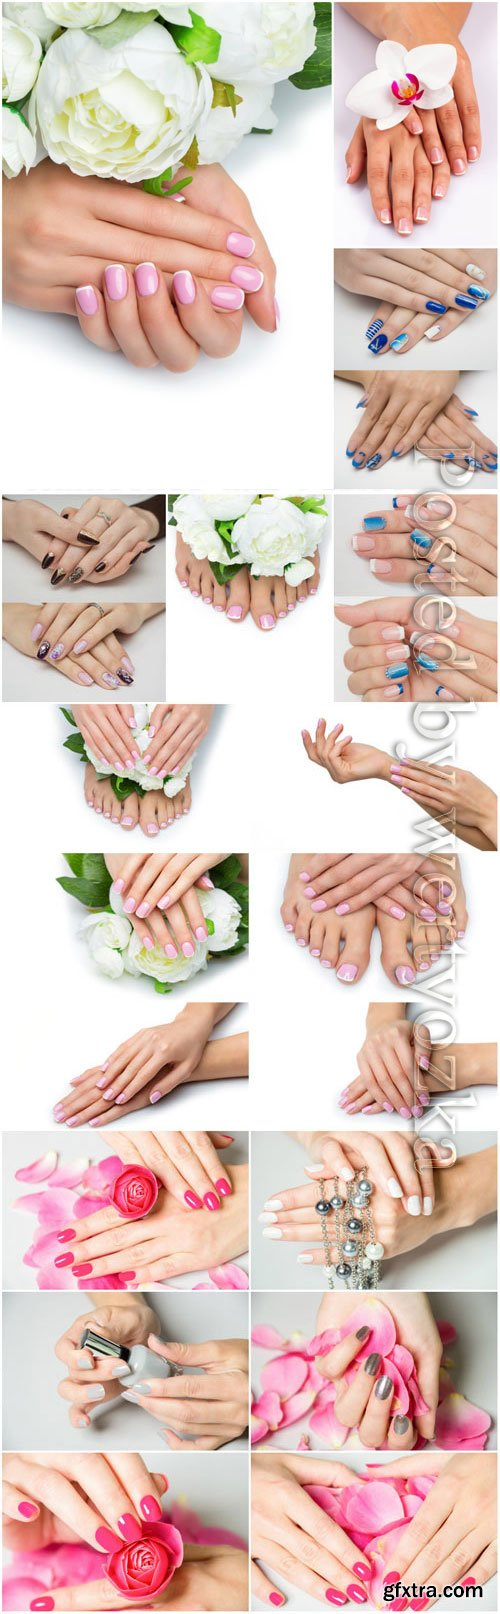 Pedicure and manicure, beautiful handles with flowers stock photo